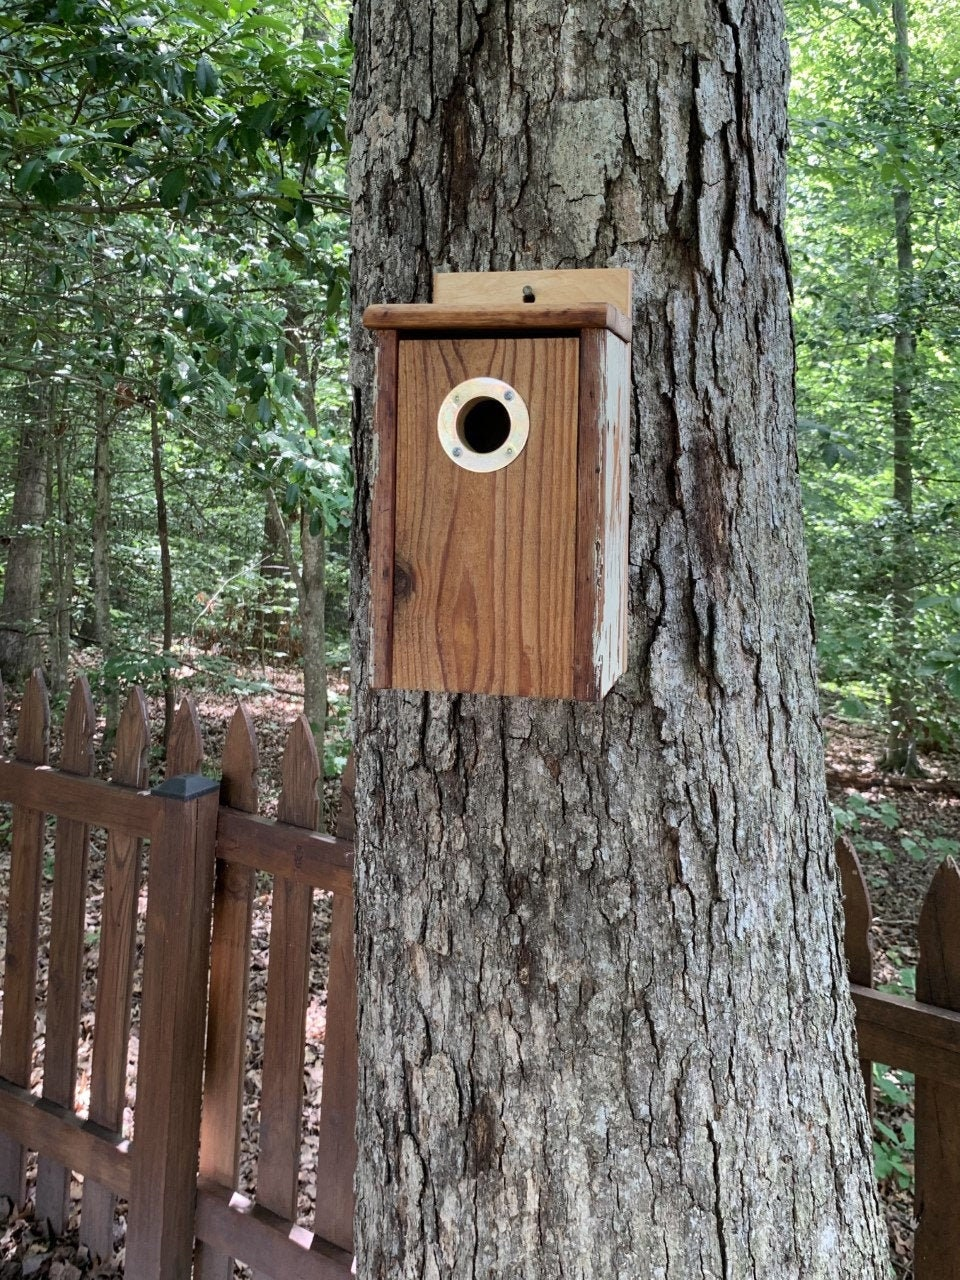 Medium-Sized Rustic Handmade Rough Timber Cedar and Recycled Farm Table Wood Outdoors Bluebird Nesting Box with Portal Protector